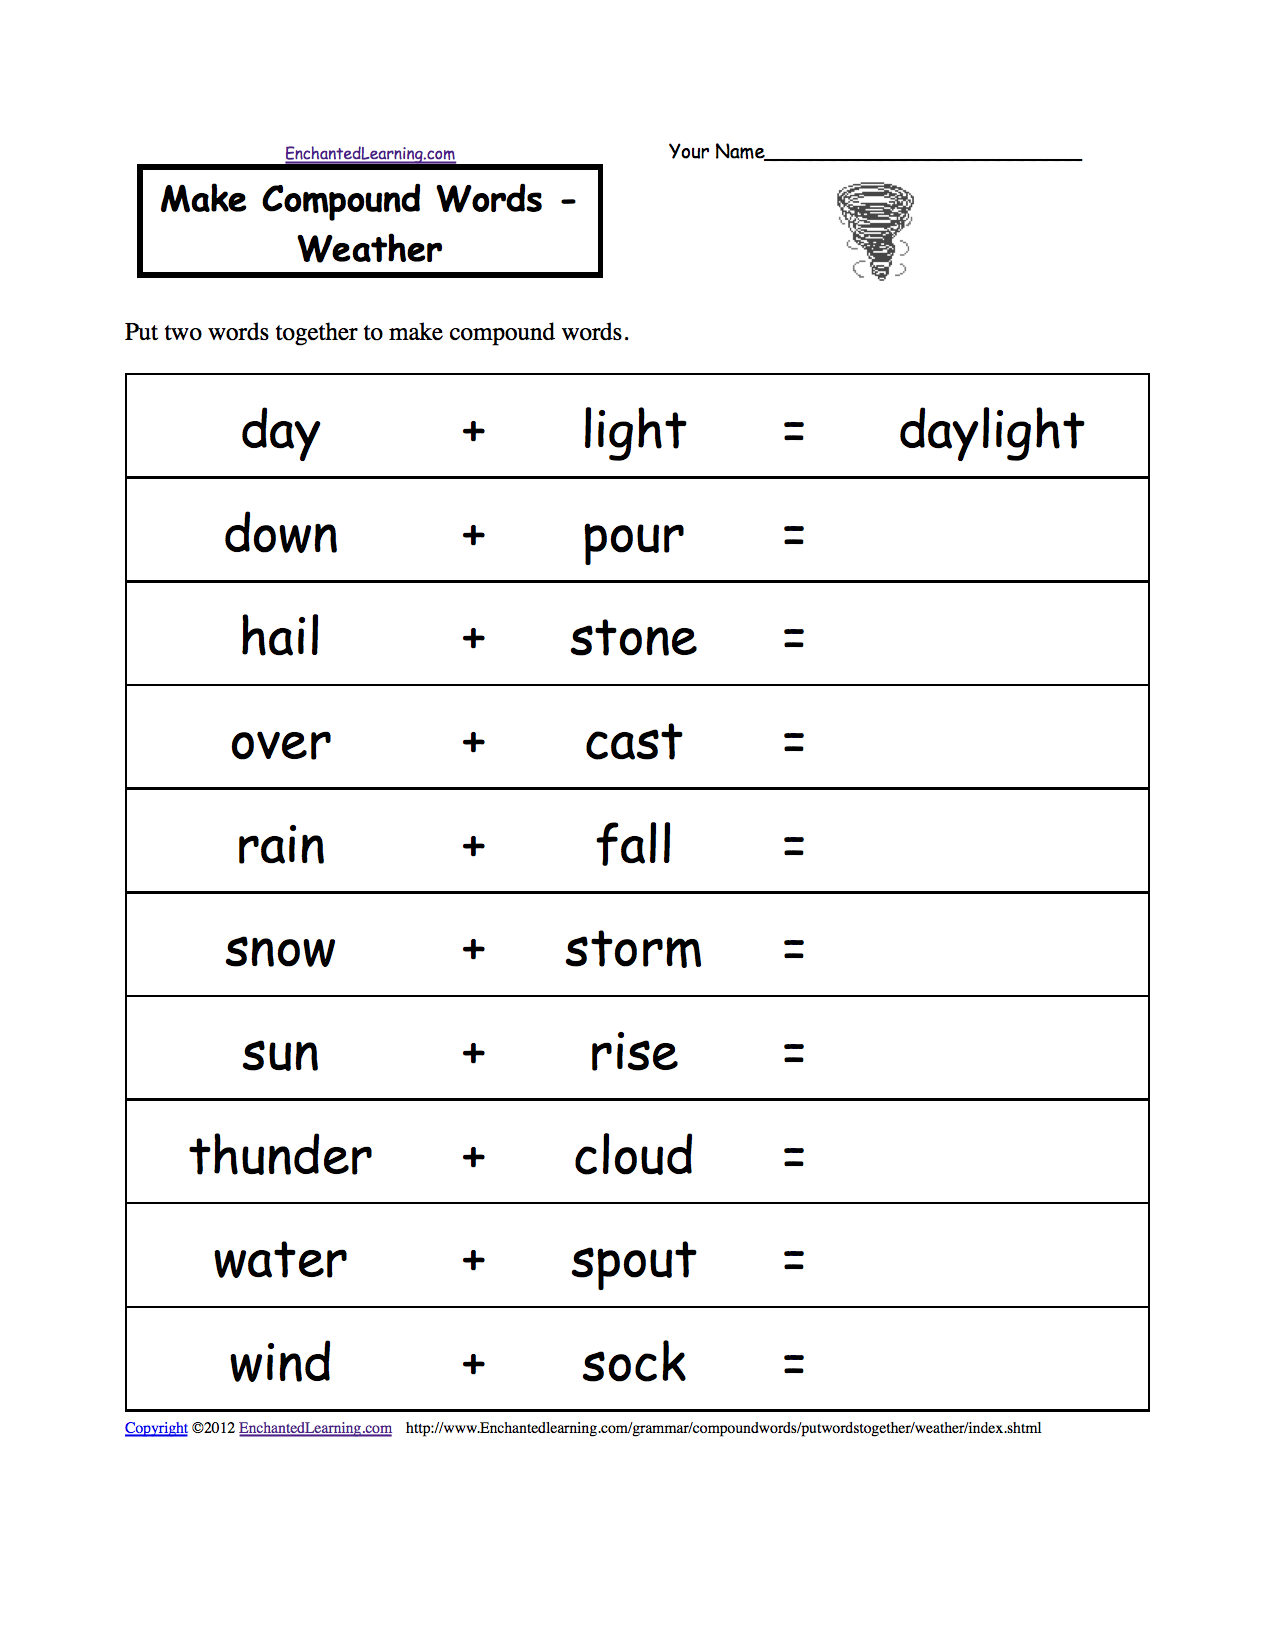 Worksheets Science Worksheets For 3rd Grade weather worksheets for 3rd grade free library about 1 html with its word